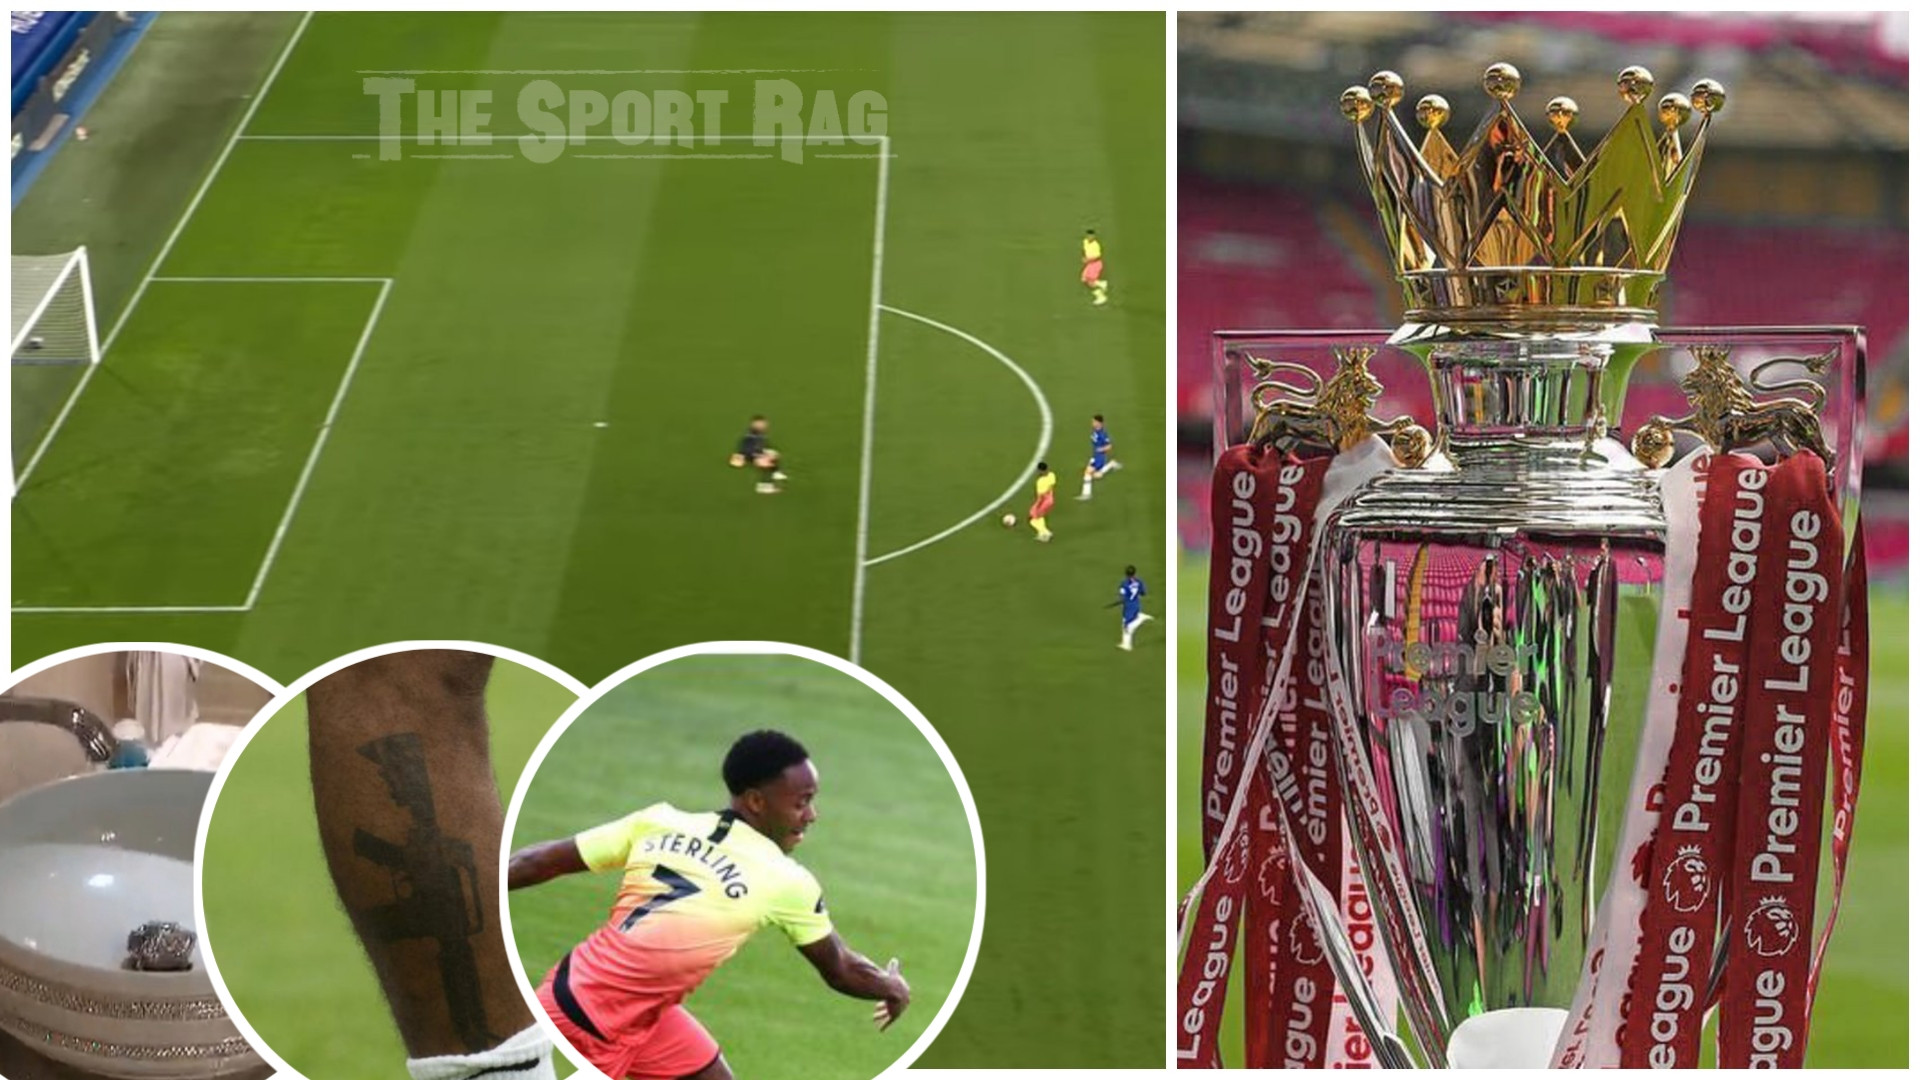 SELFISH Sterling ROBS Liverpool of Title Limelight, says Daily Mail